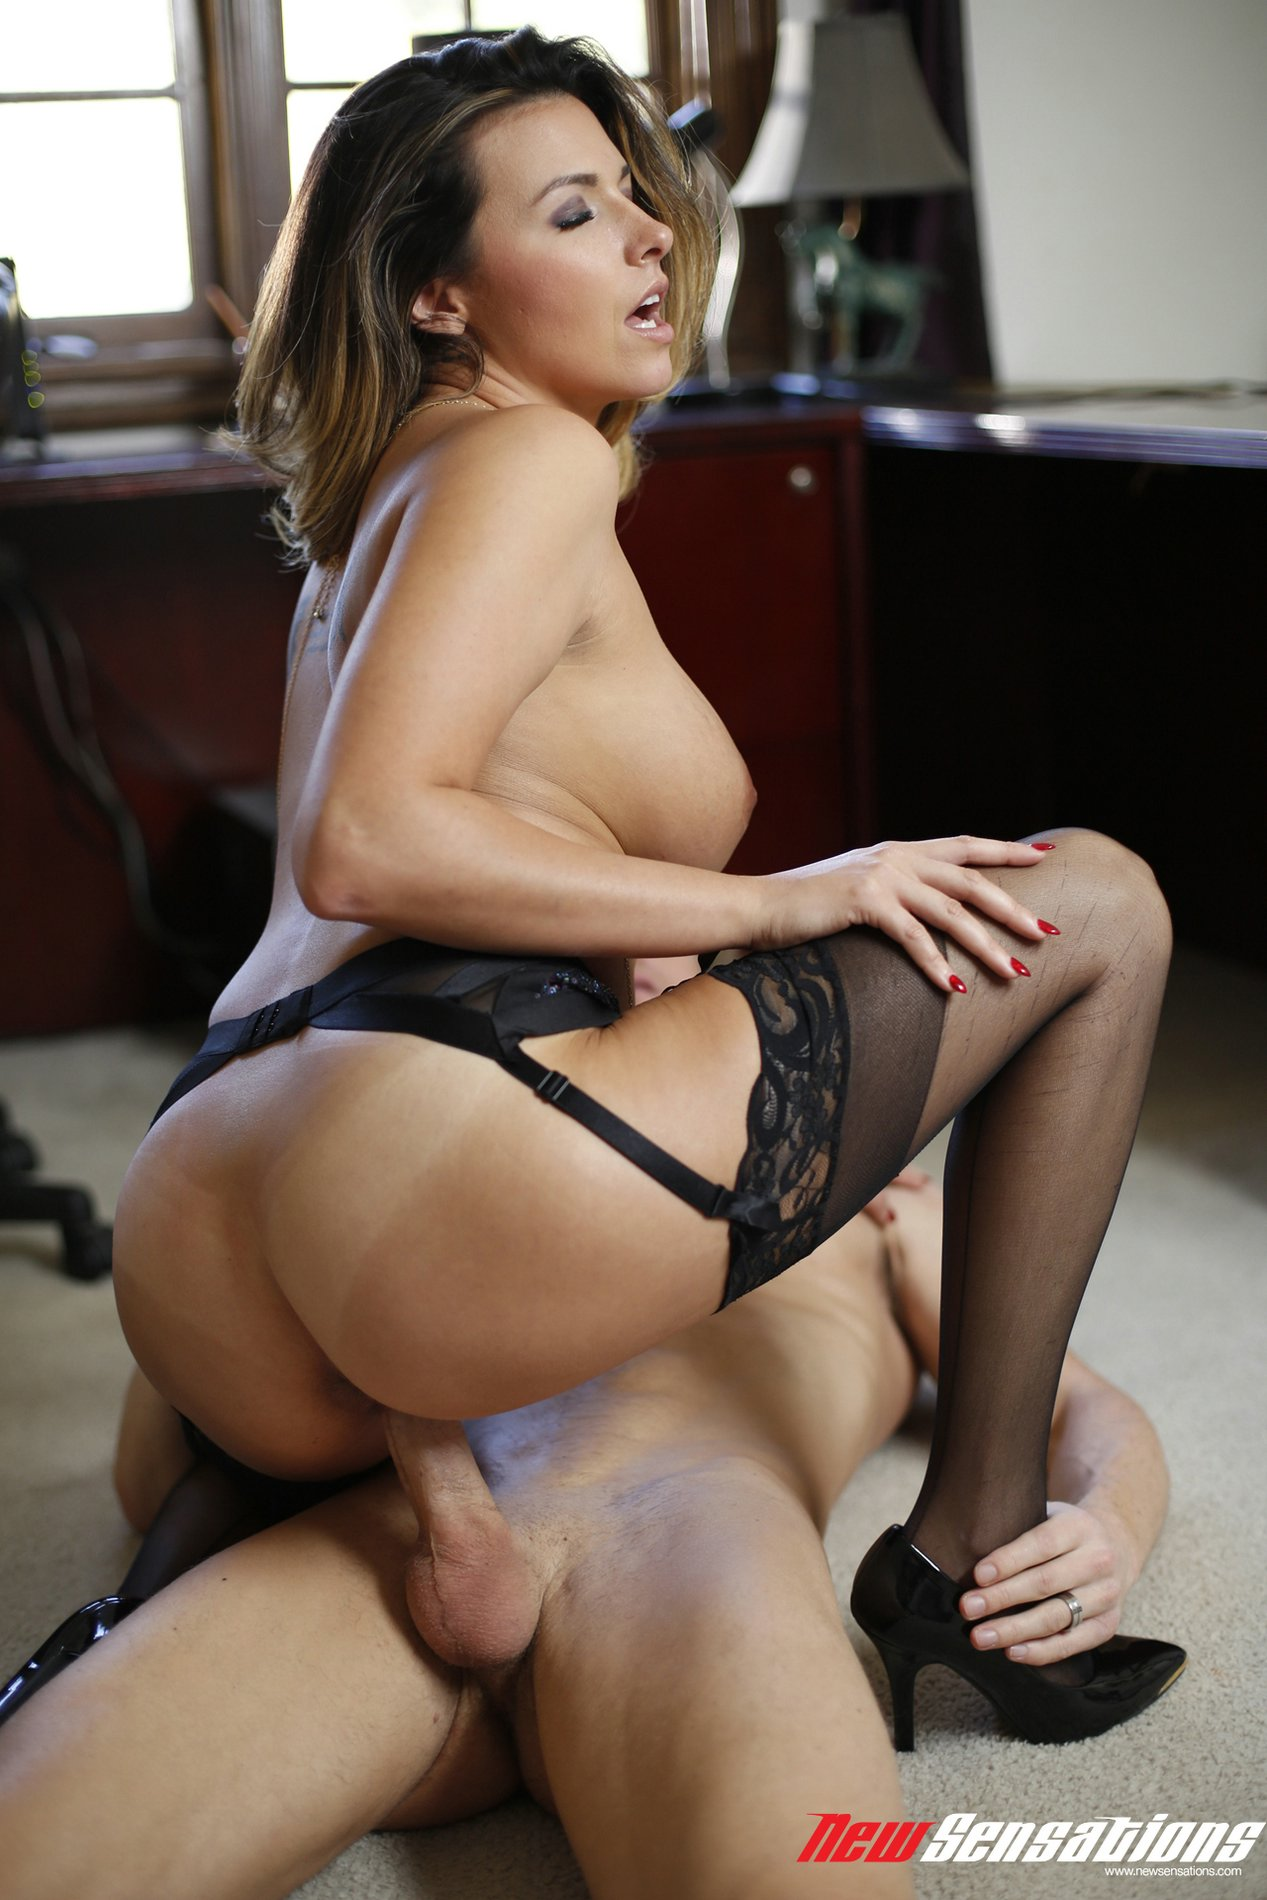 Boss in pantyhose gets what she wants - 3 part 1